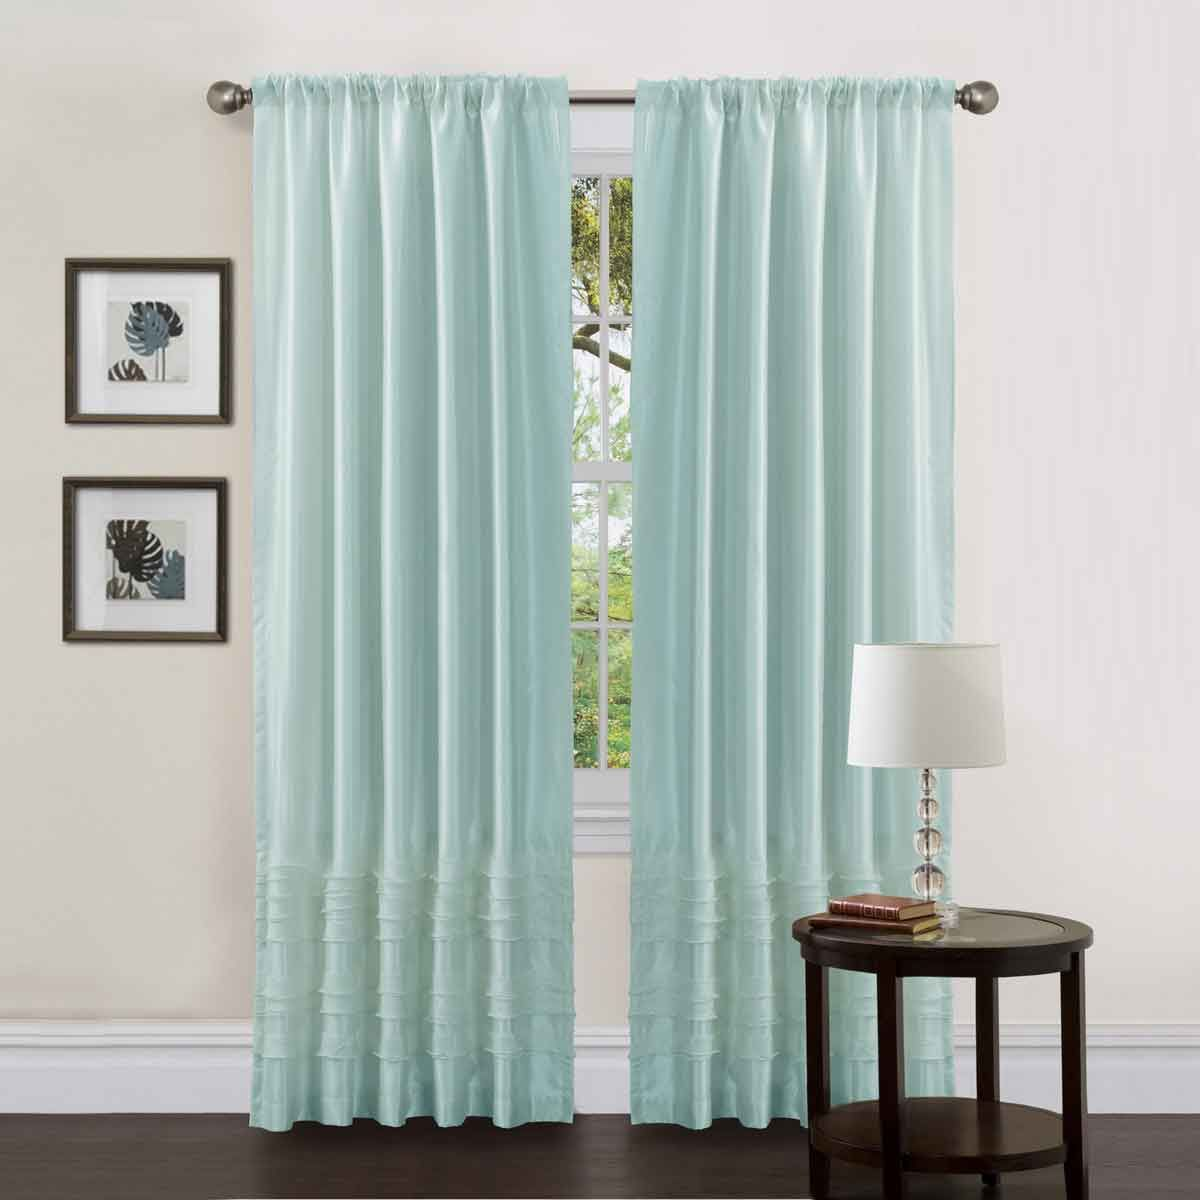 Fetching Curtain Ideas For Master Bedroom | Curtain ... on Master Bedroom Curtain Ideas  id=53890